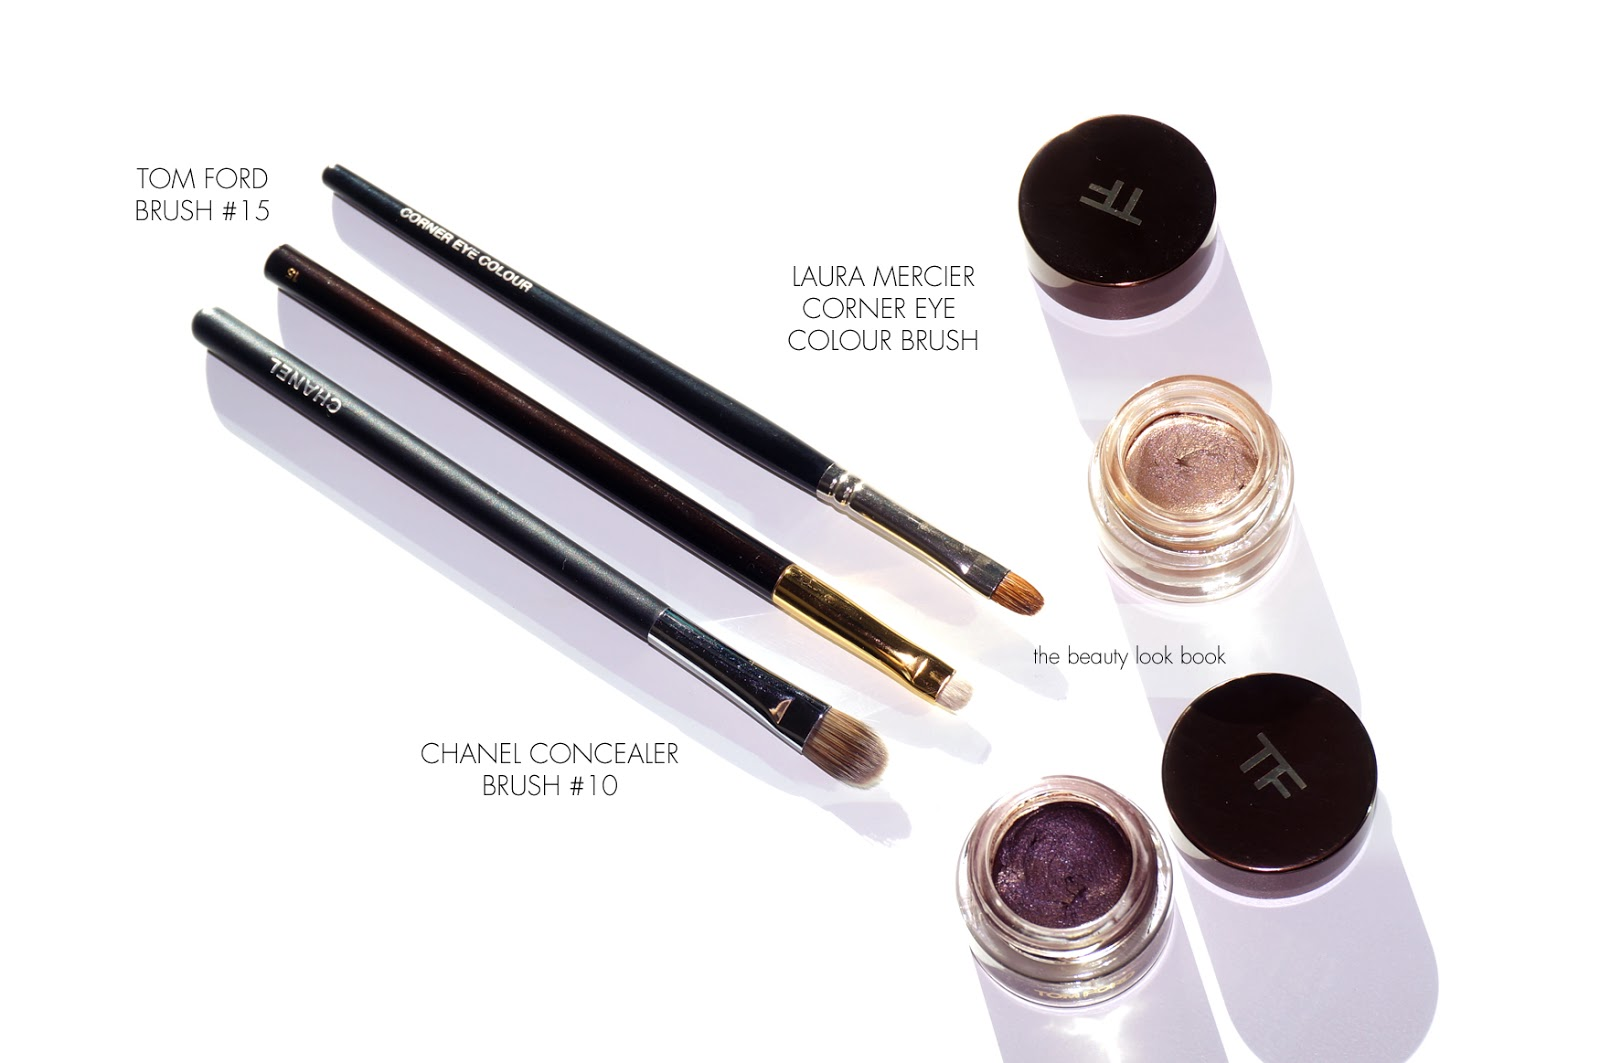 My Favorite Cream Shadow Brush To Use Is Actually A Concealer Brush The  Chanel Brush #10 Is My Goto For Cream Shadows It Has A Smooth Tip And  It's Just